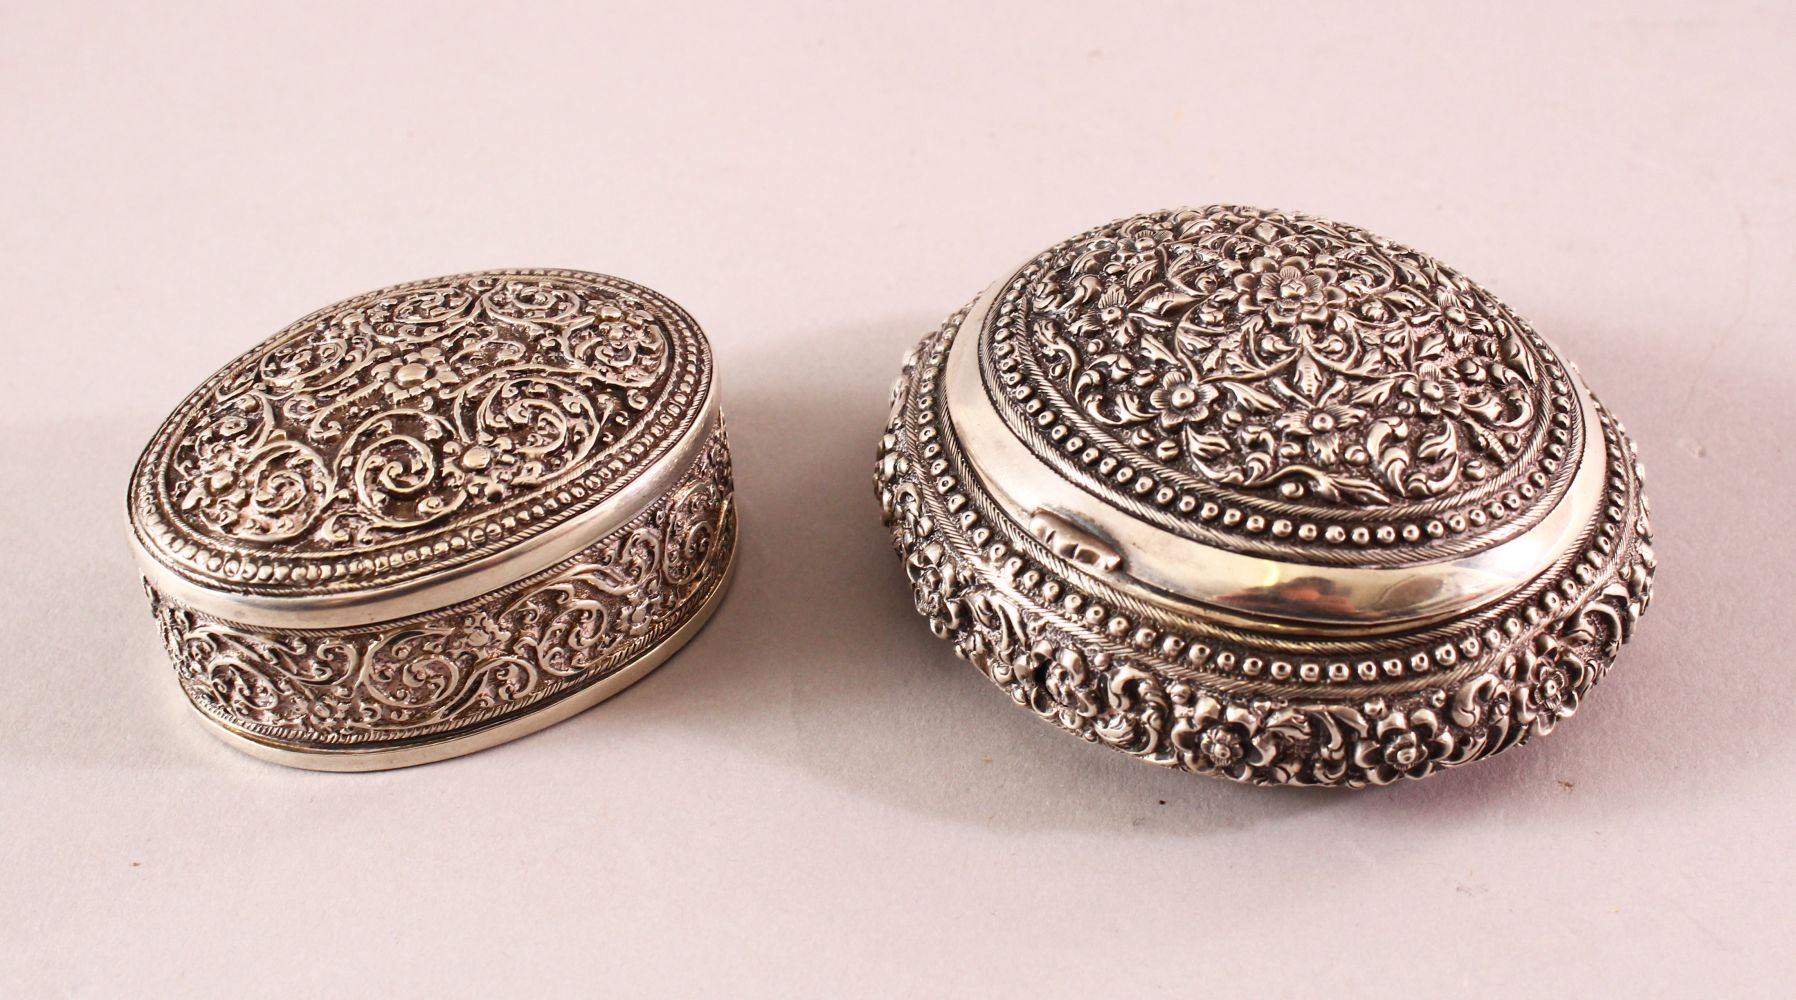 TWO 19TH CENTURY SRI LANKAN SILVER BOXES with filigree decoration, 7.5cm and 5.5cm wide.